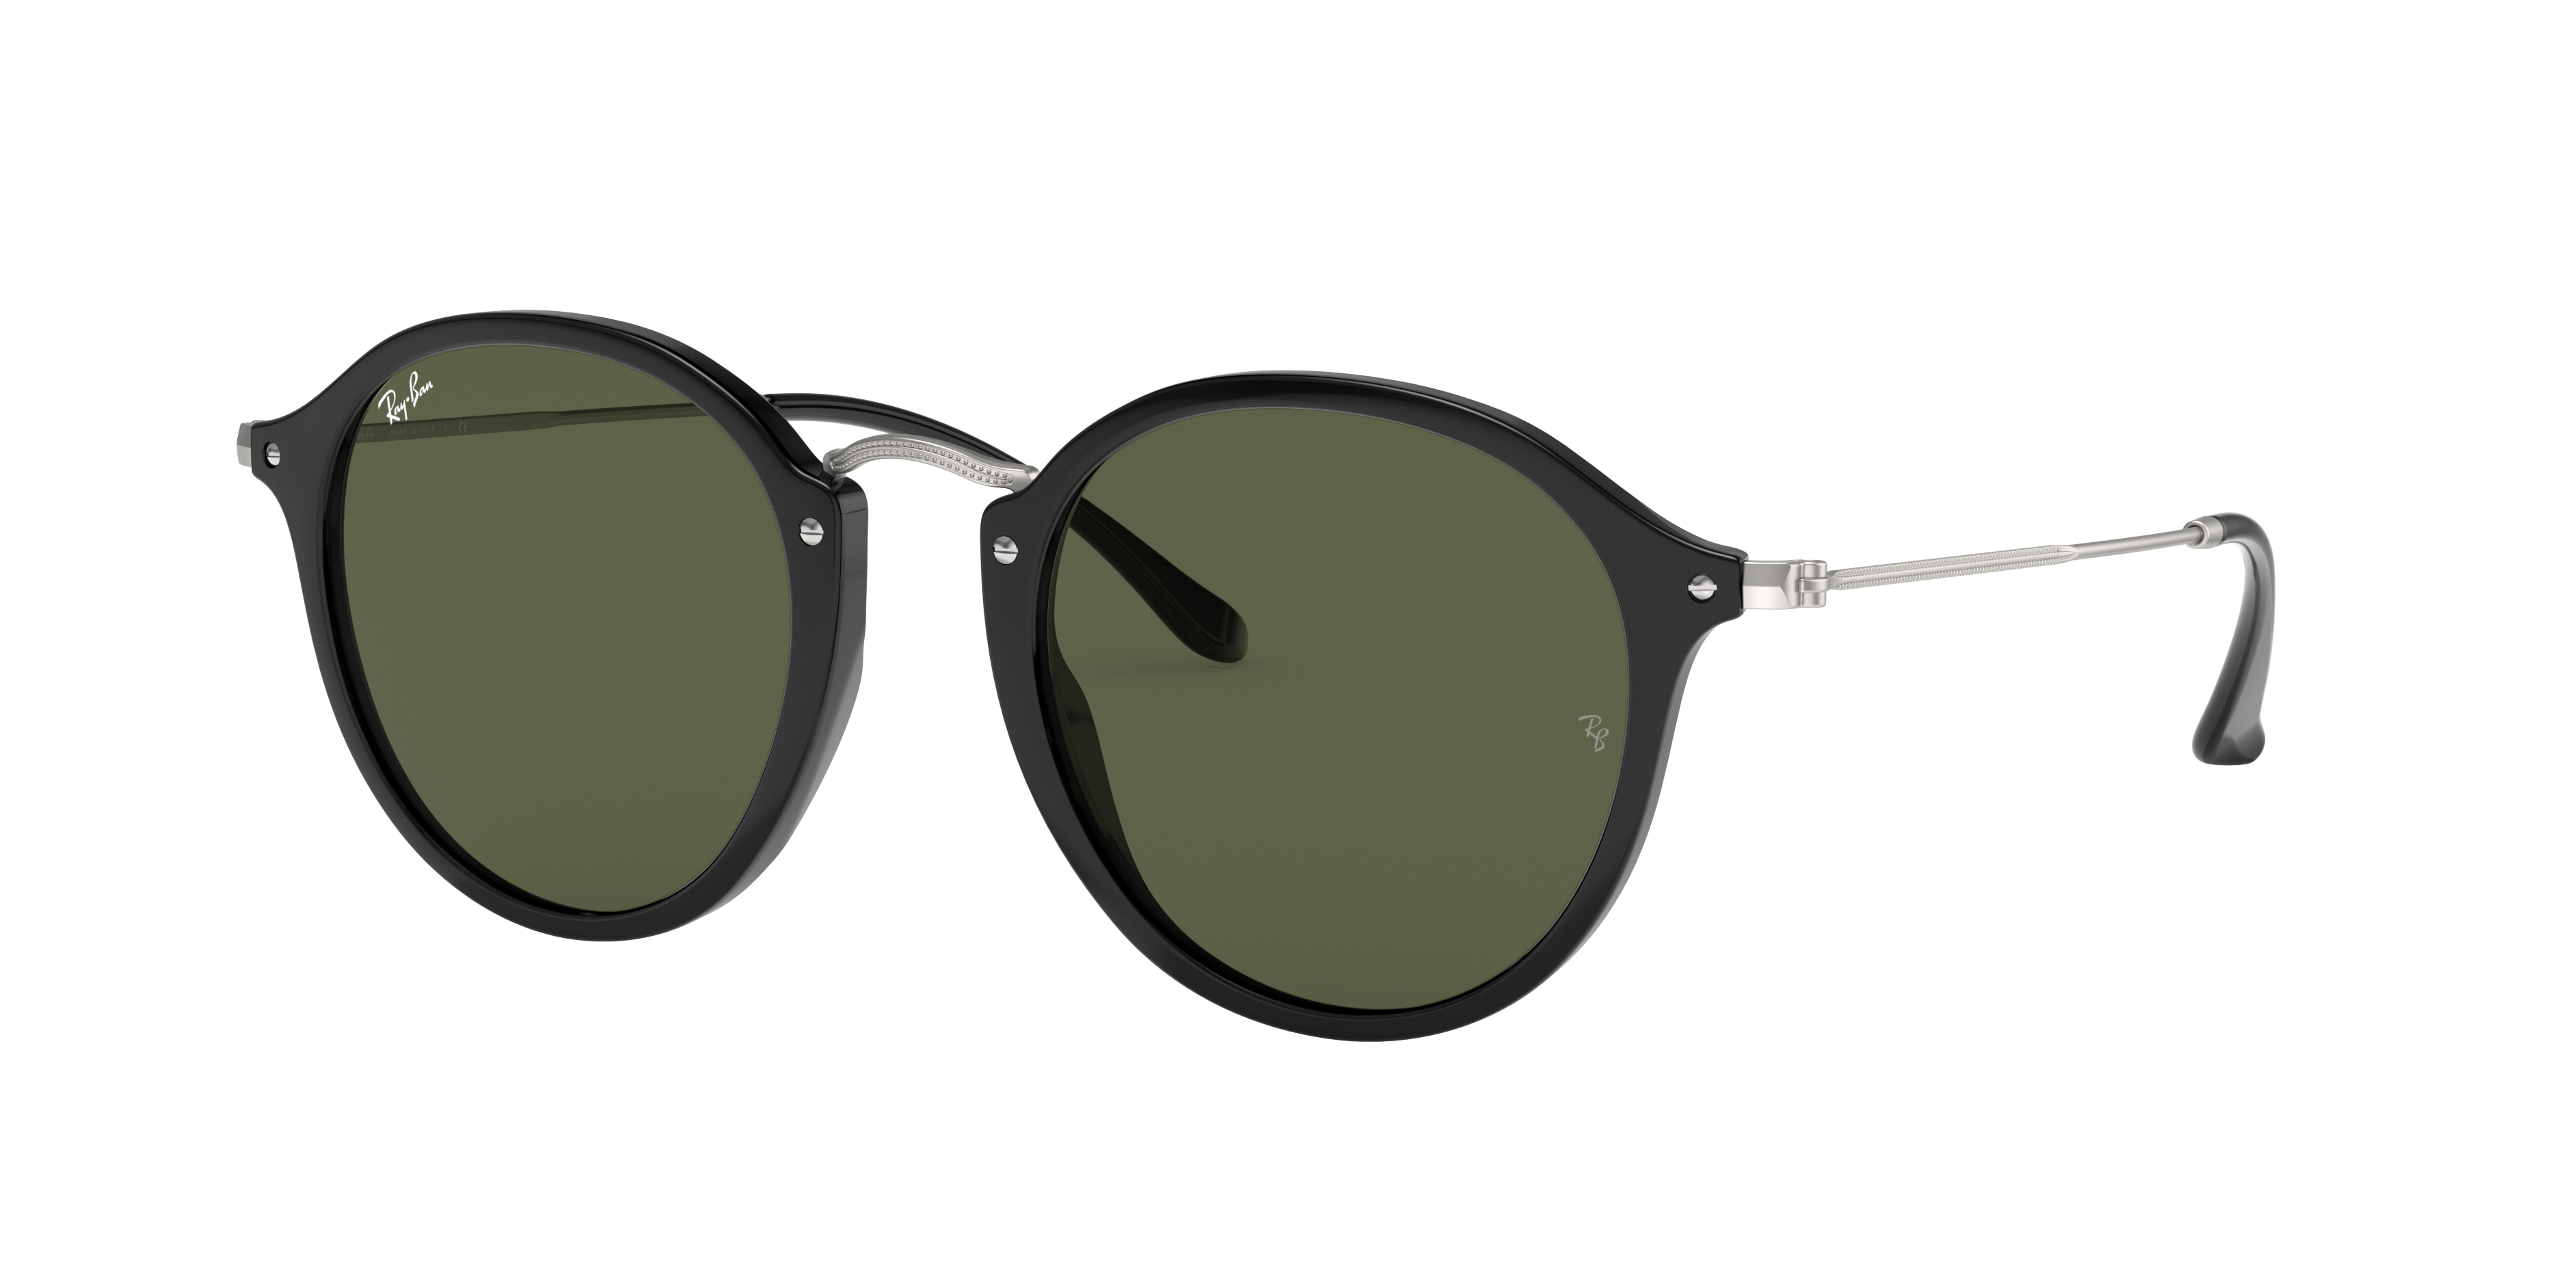 Ray-Ban Round Fleck Silver, Green Lenses - RB2447